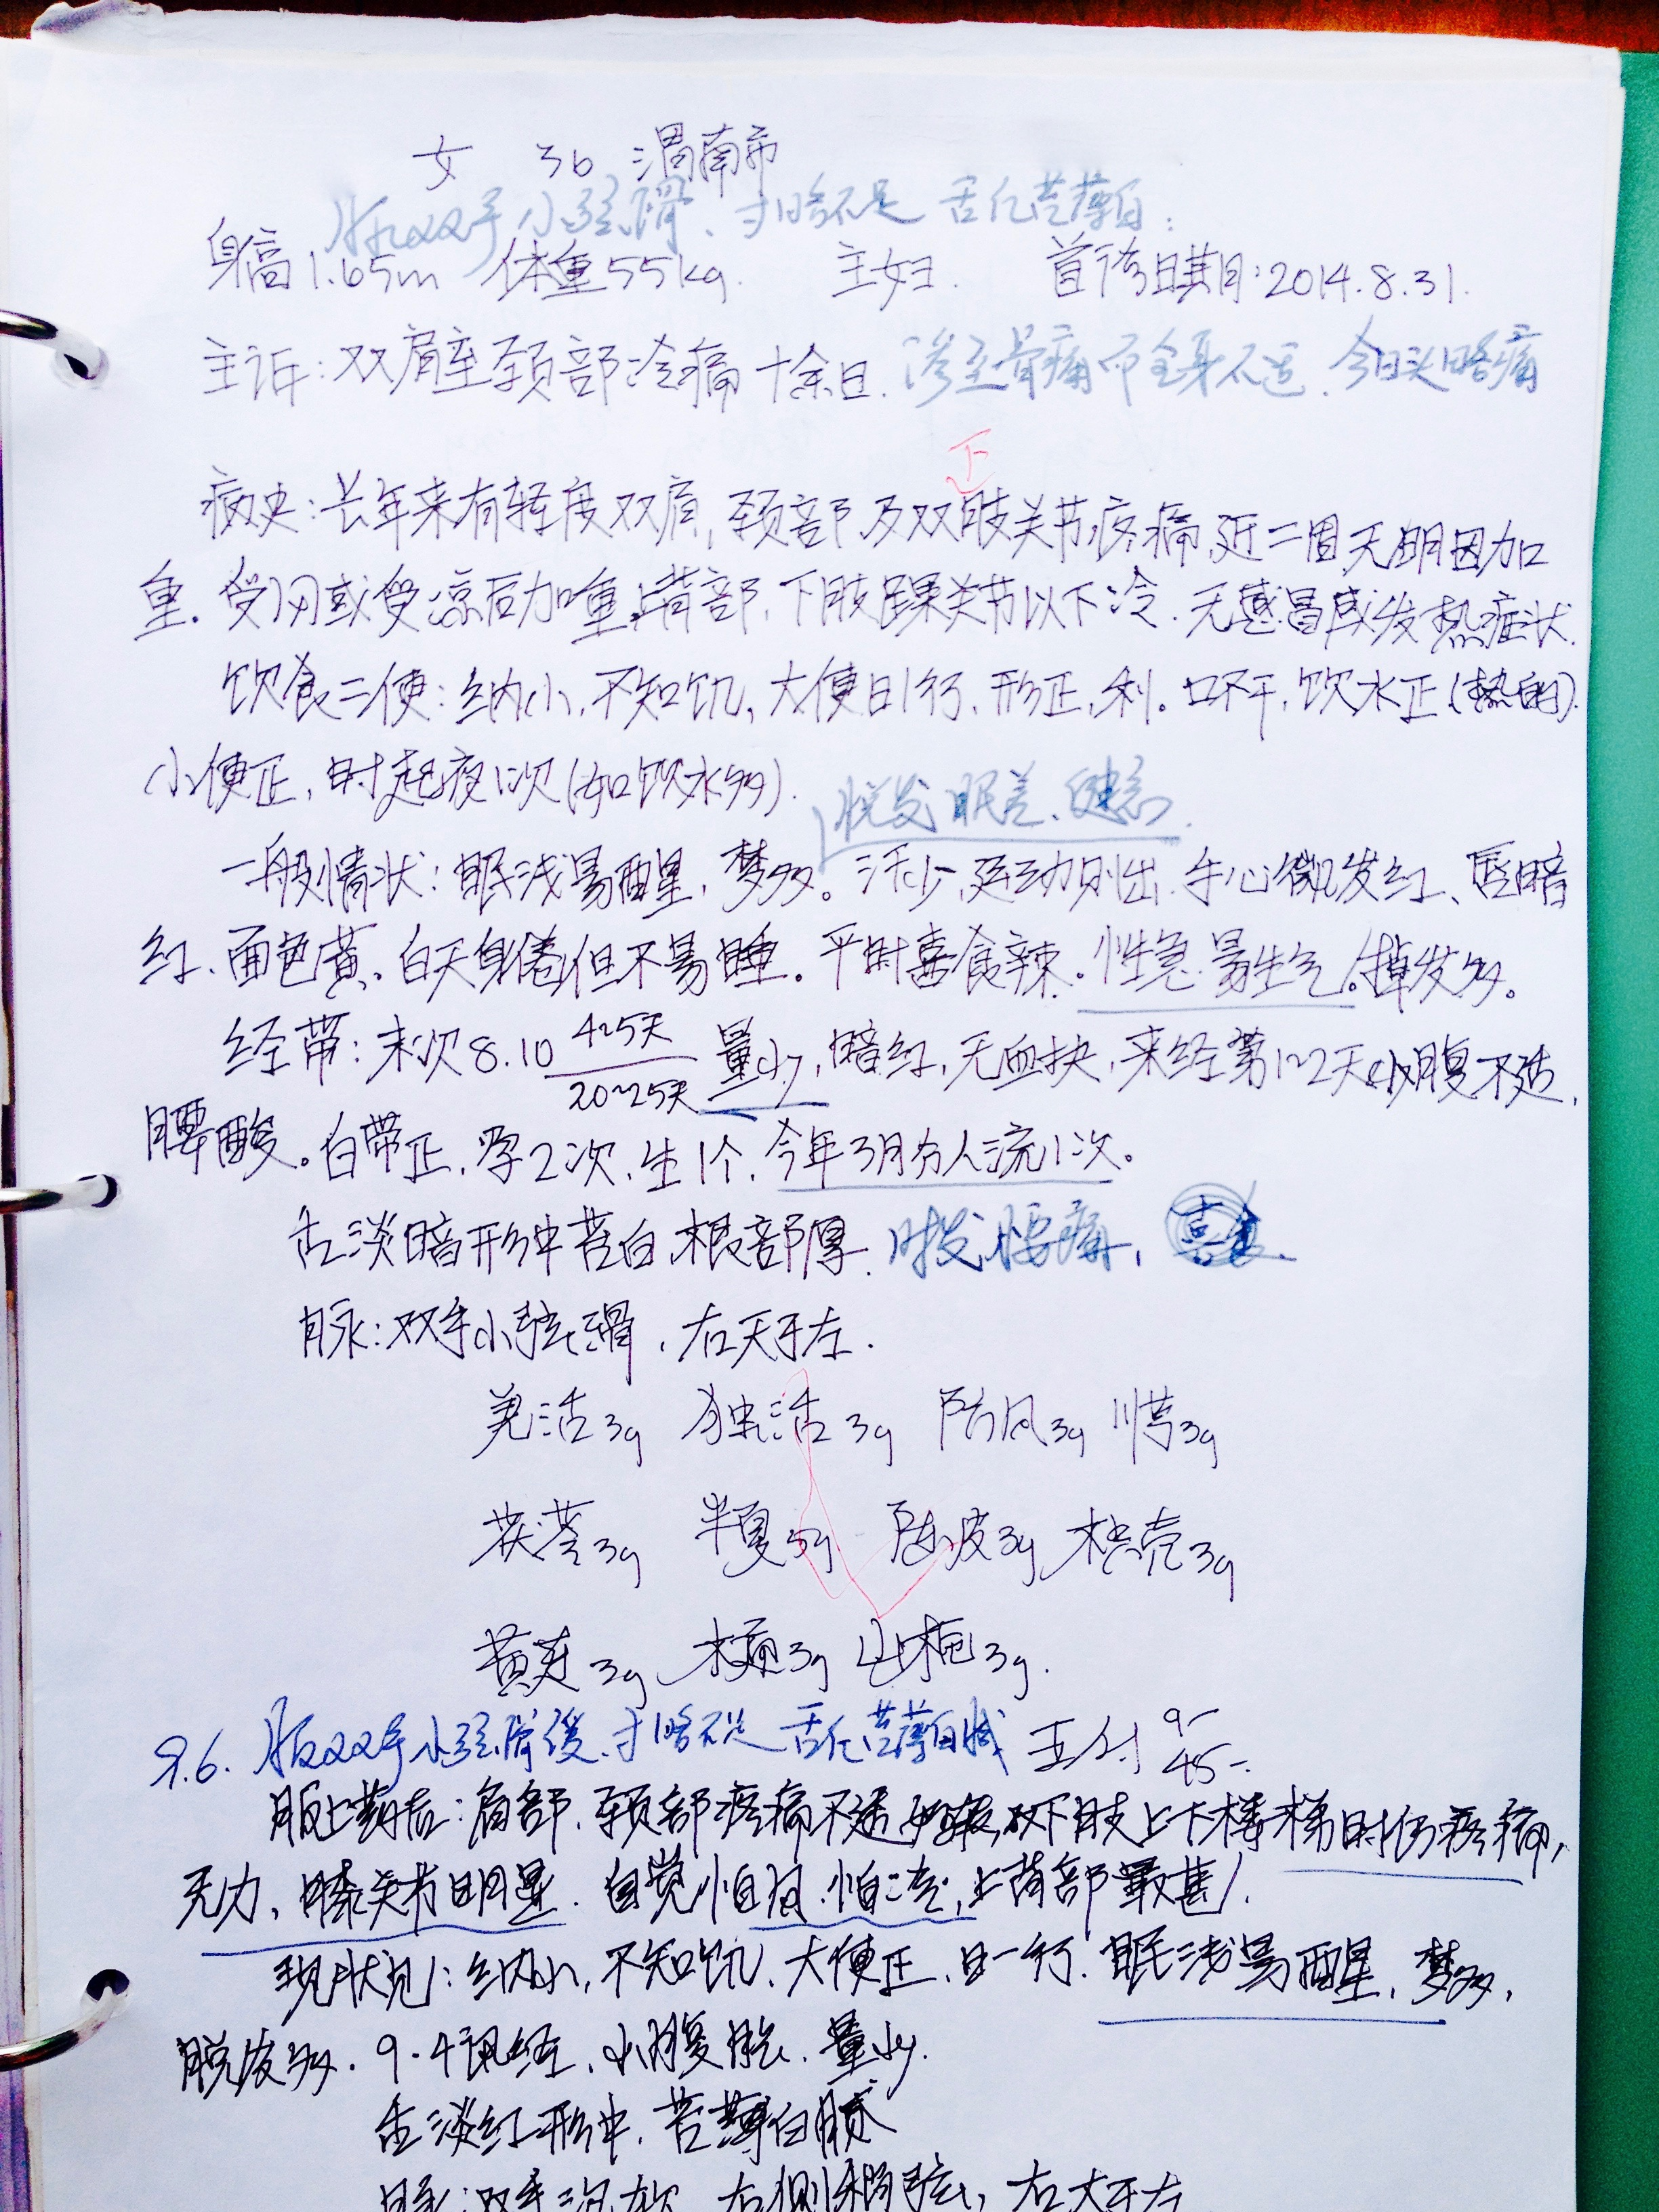 Record of an initial patient I worked on during my time with Dr. Sun (Weiyang, Henan)